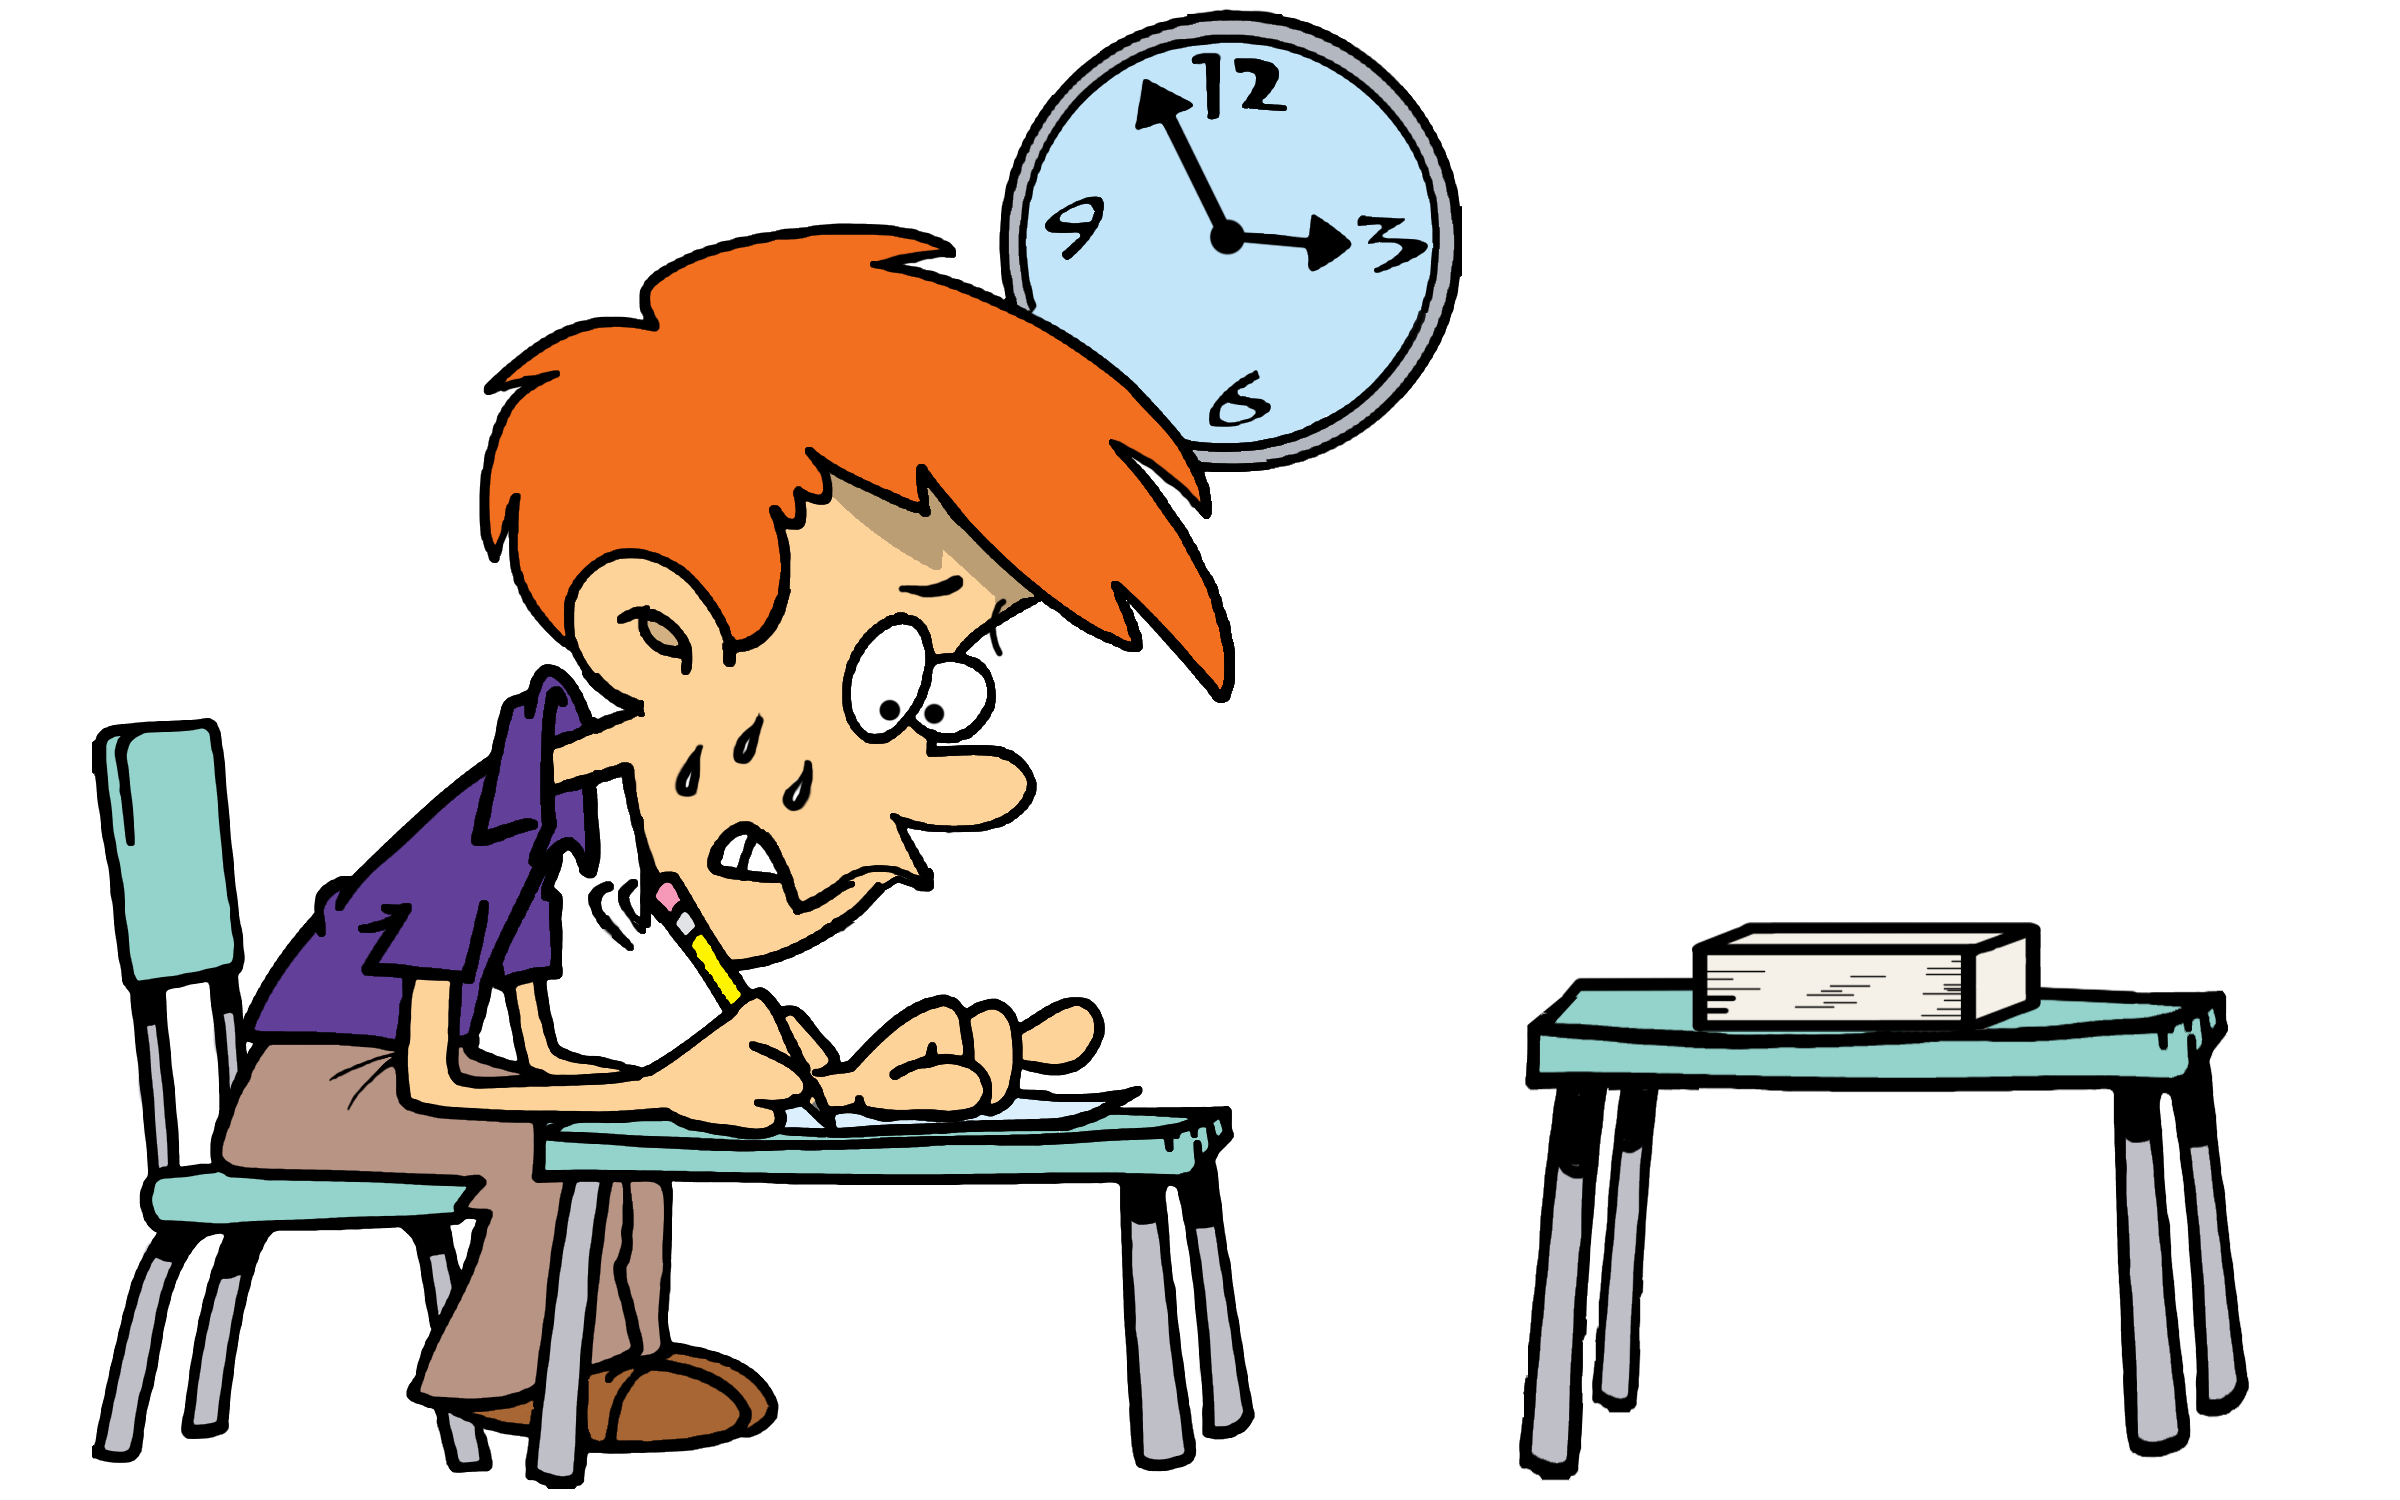 Retaking tests emphasizes learning. Test clipart gradebook